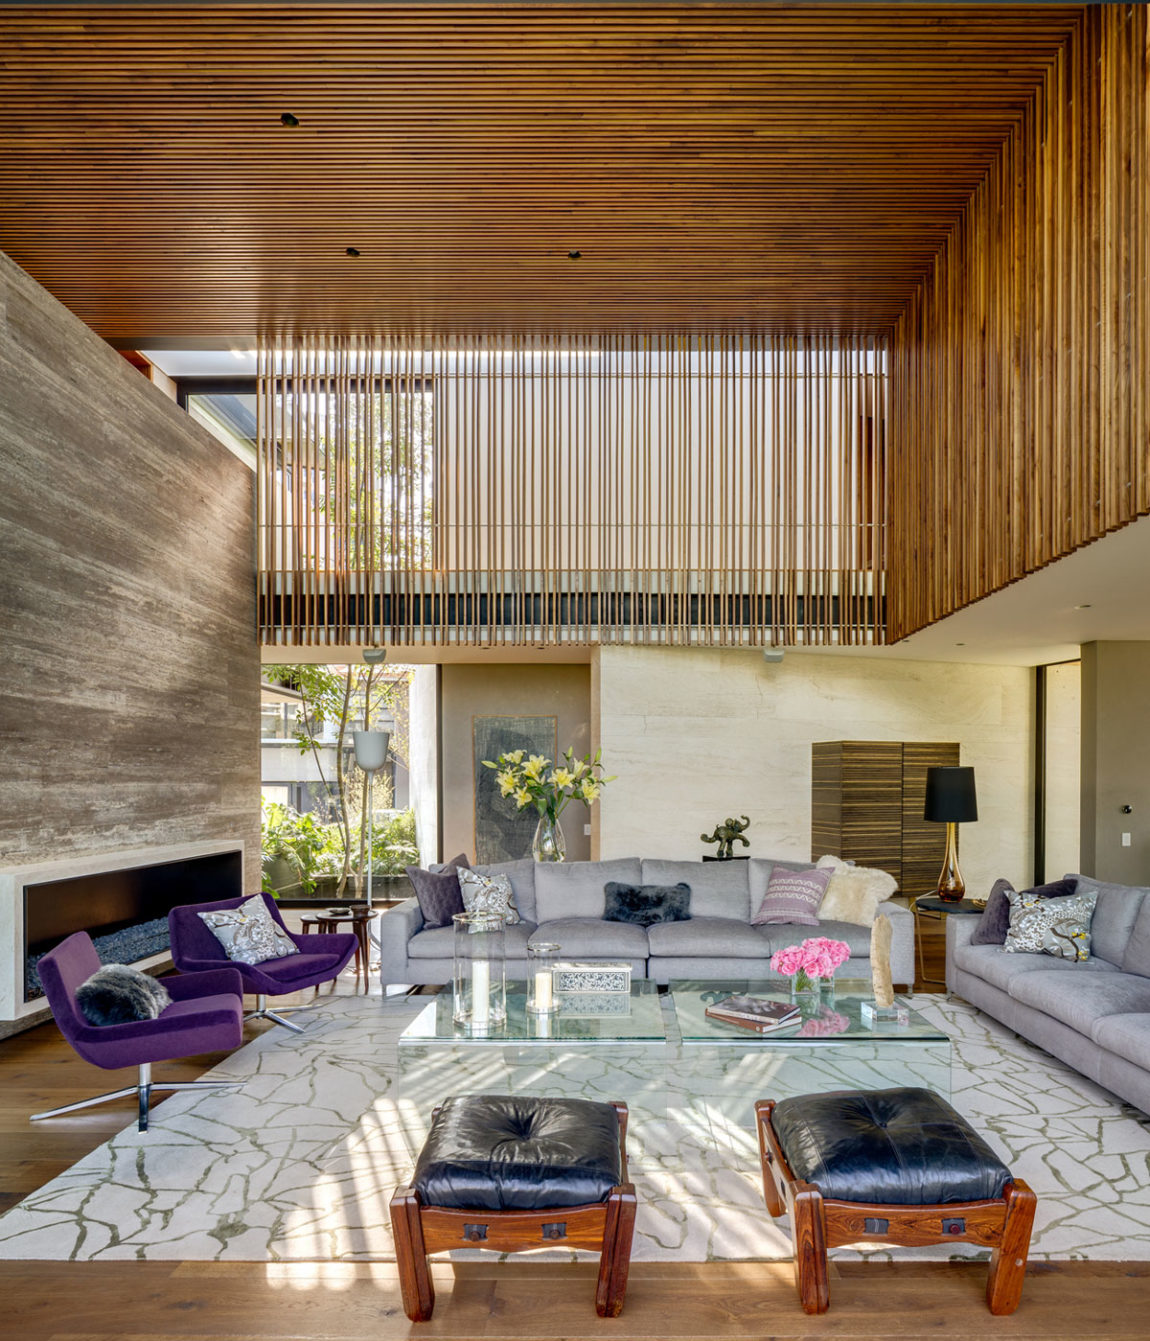 V9 by VGZ Arquitectura (4)